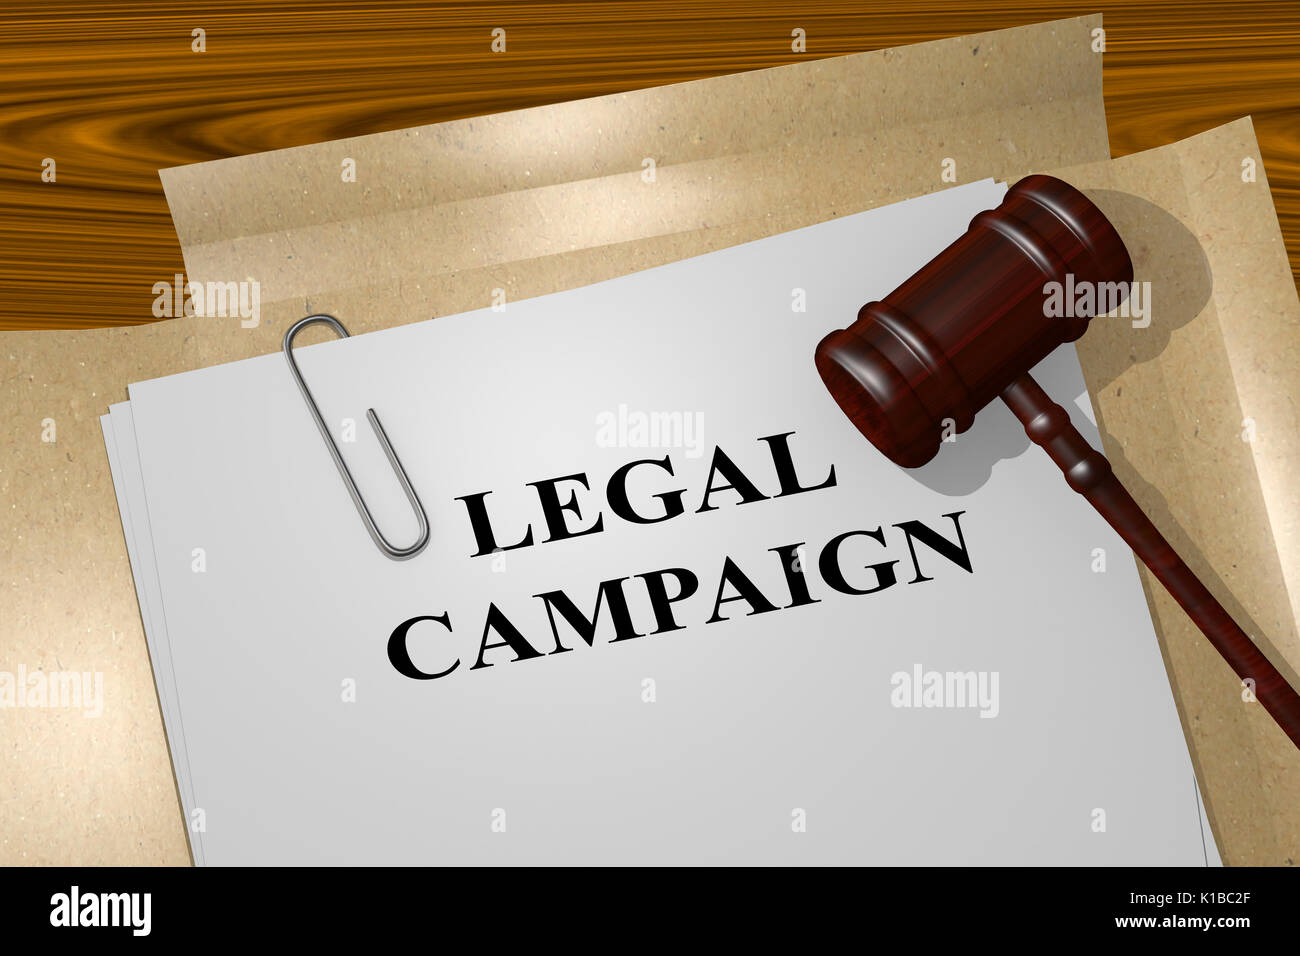 3D illustration of 'LEGAL CAMPAIGN' title on Legal Documents. Legal concept. - Stock Image